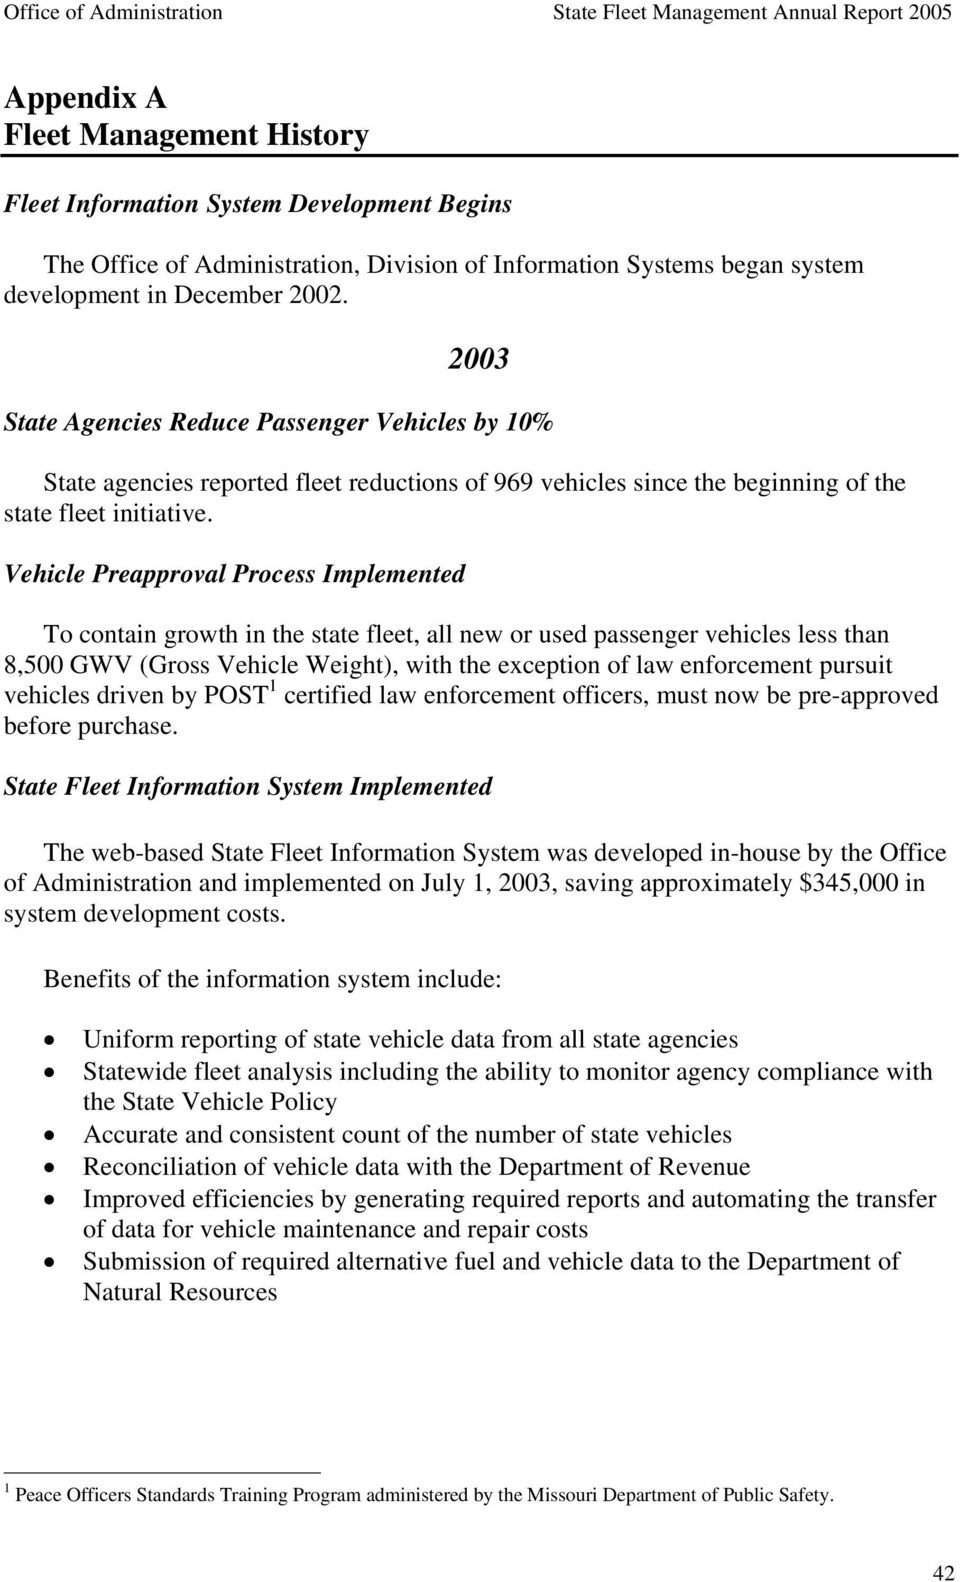 Vehicle Preapproval Process Implemented To contain growth in the state fleet, all new or used passenger vehicles less than 8,500 GWV (Gross Vehicle Weight), with the exception of law enforcement